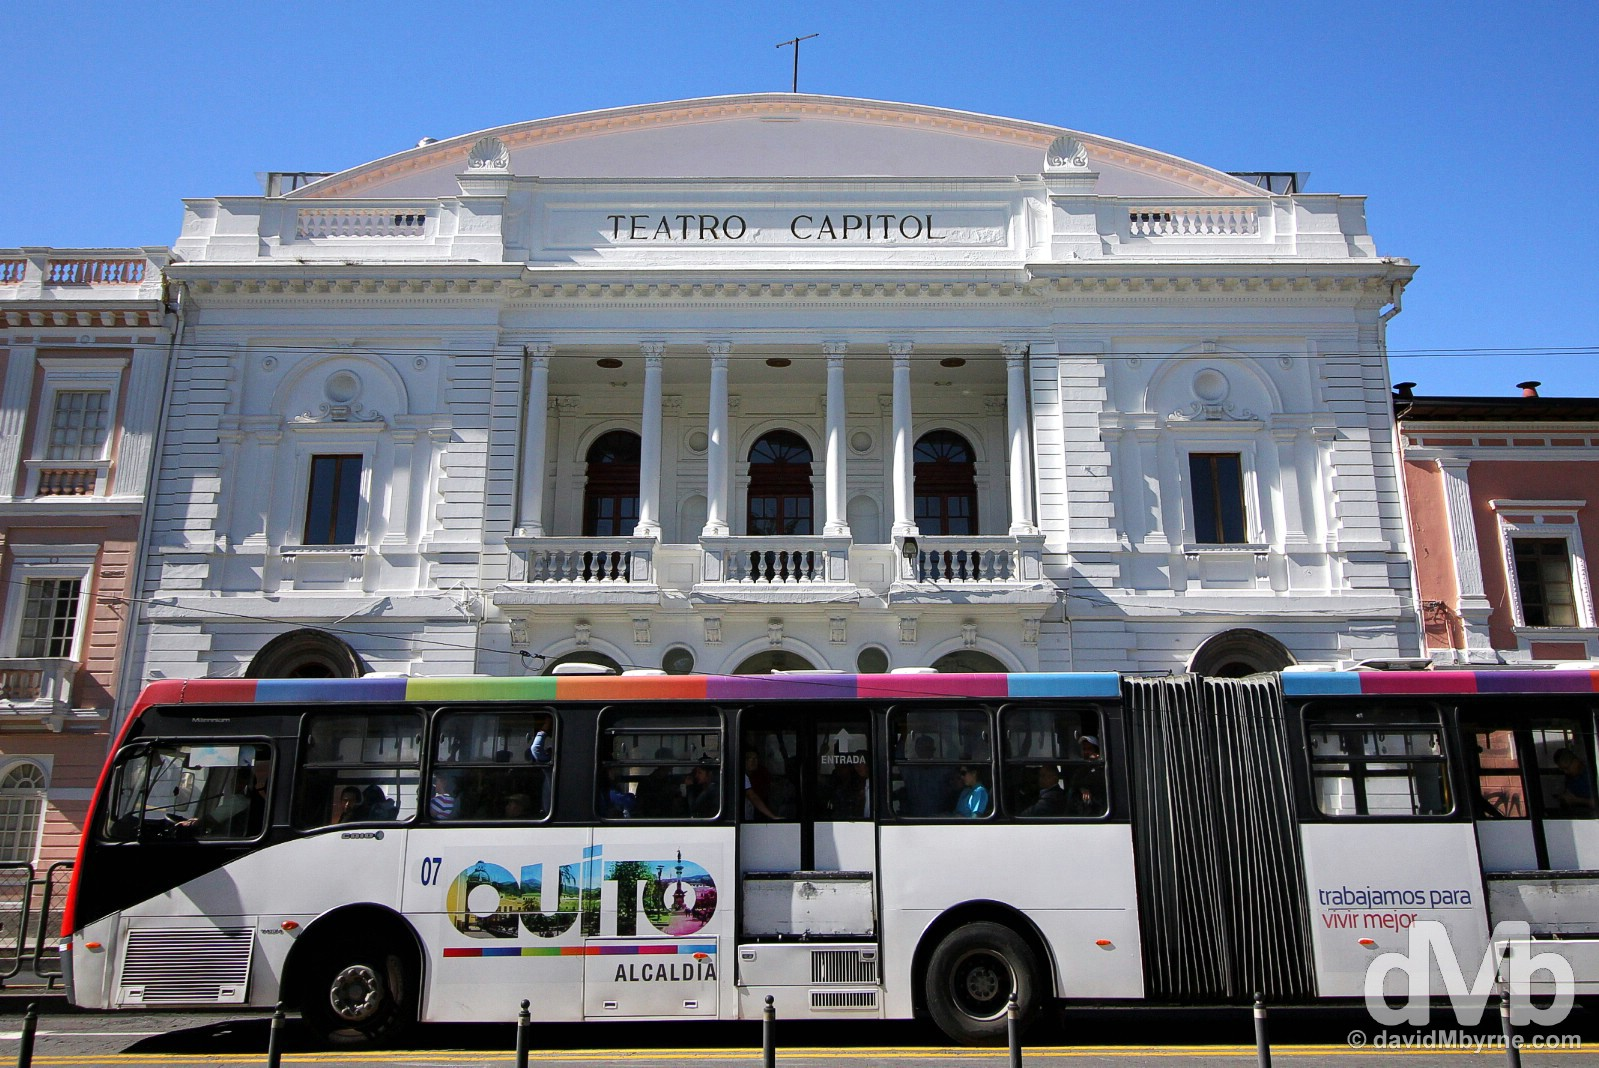 Teatro Capital, Avenida Gran Colombia, Quito Ecuador. July 3, 2105.